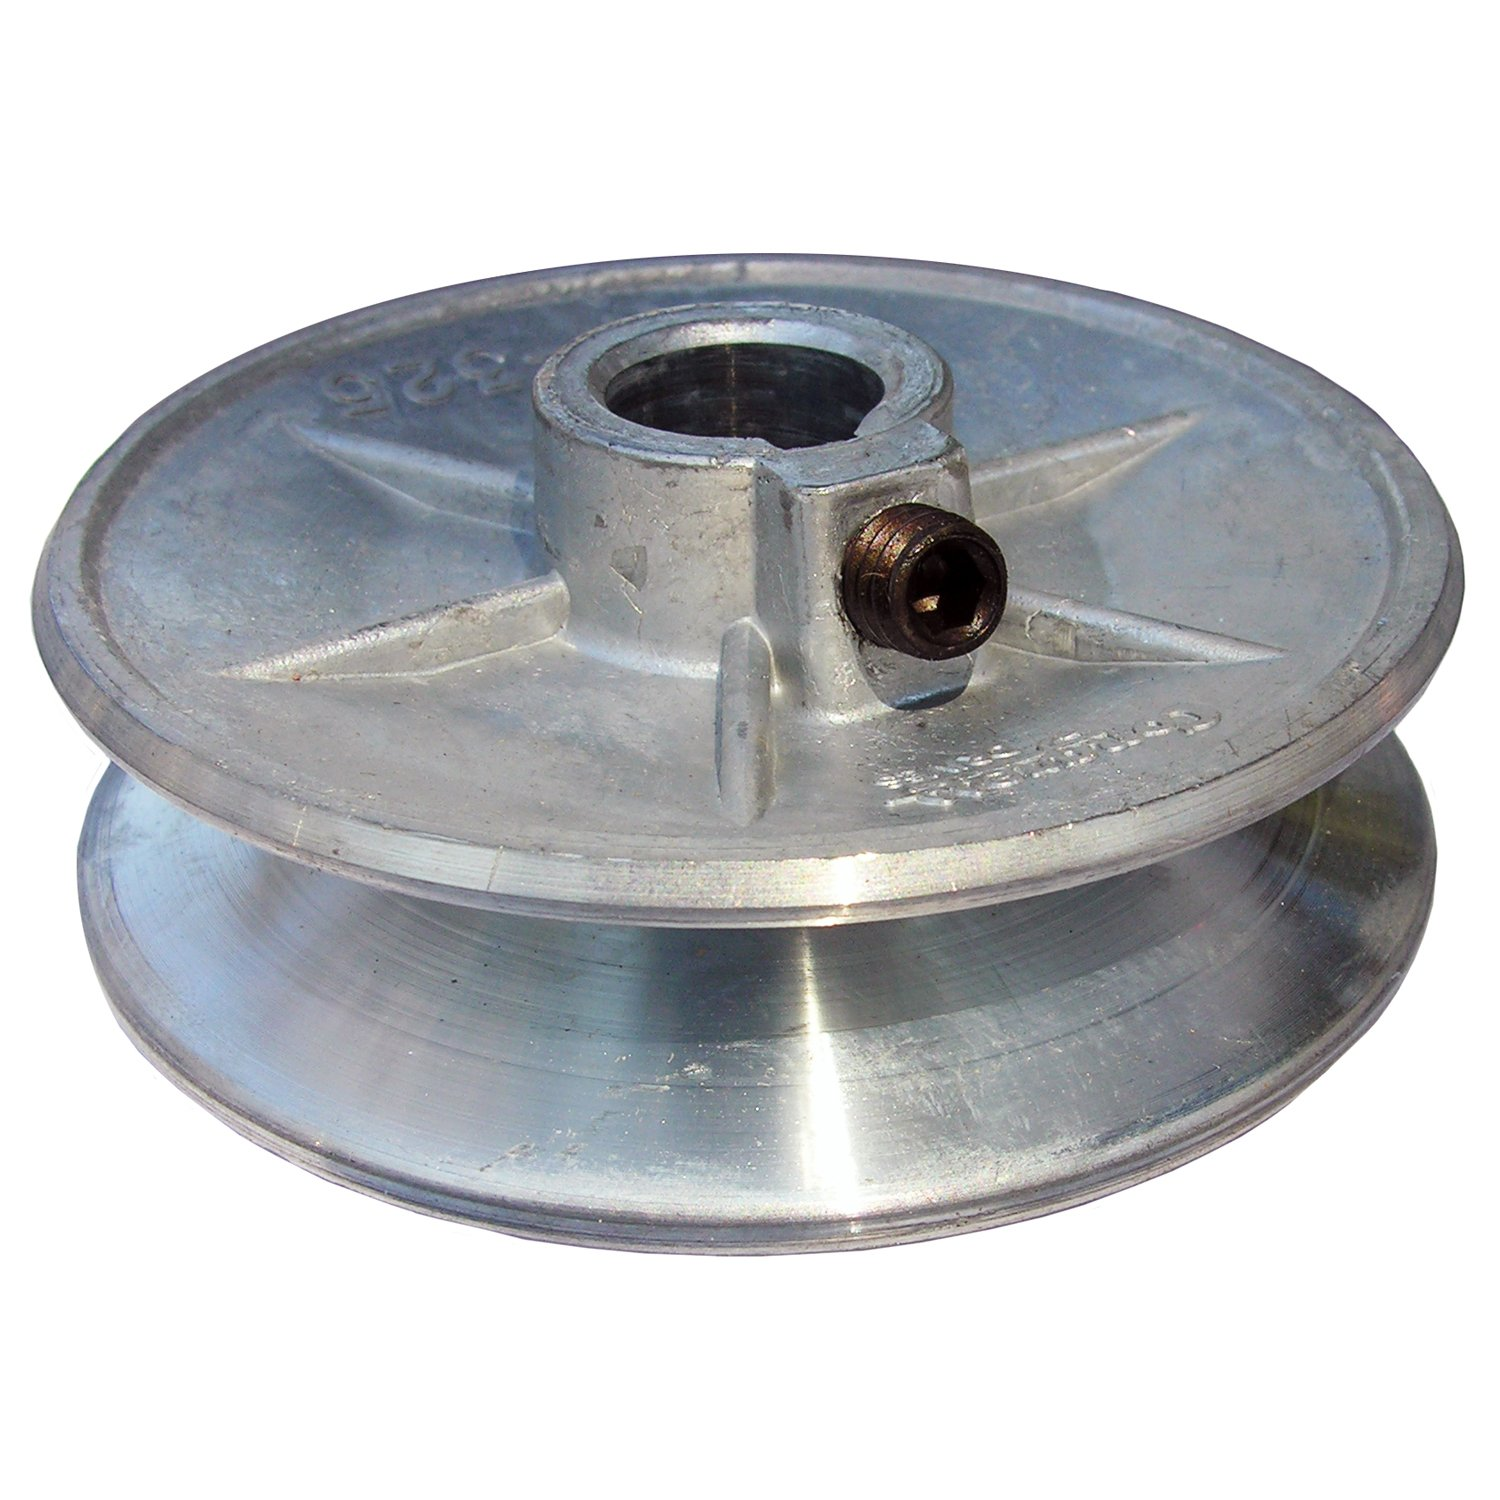 LASCO 05-1209 Cooler Round Variable Motor Pulley, 1/2-Inch x 3 1/2-Inch